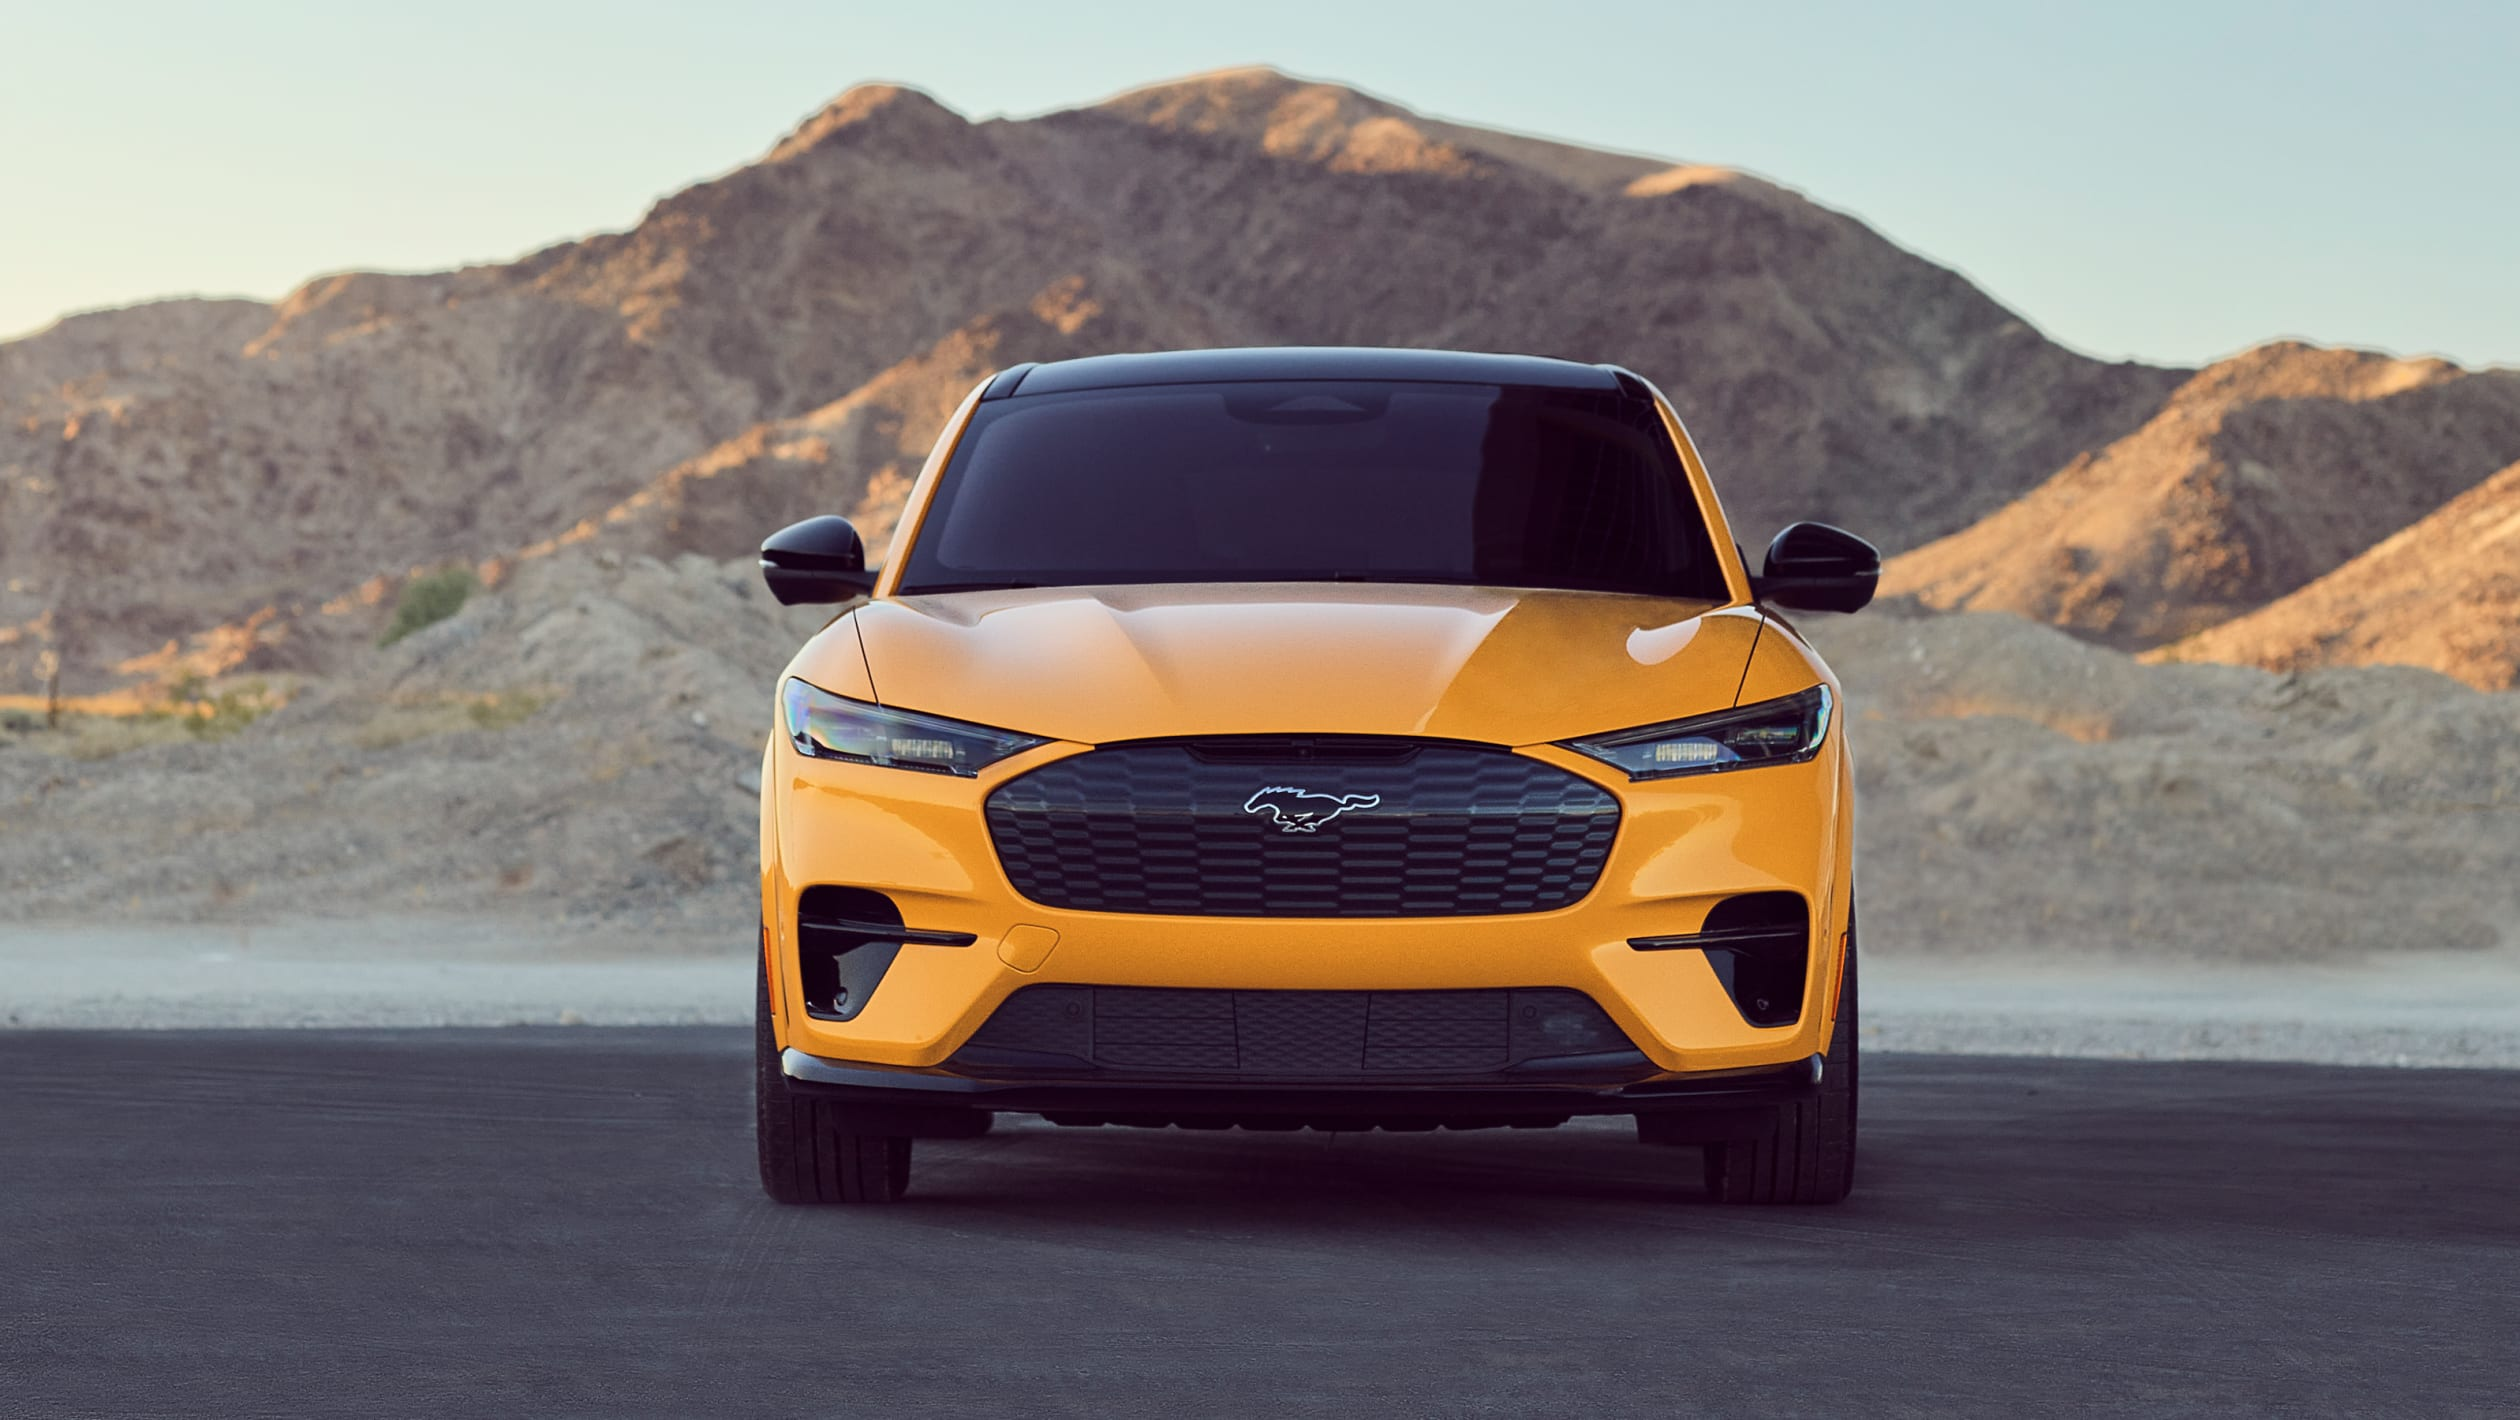 2022 Ford Mustang Mach-E GT